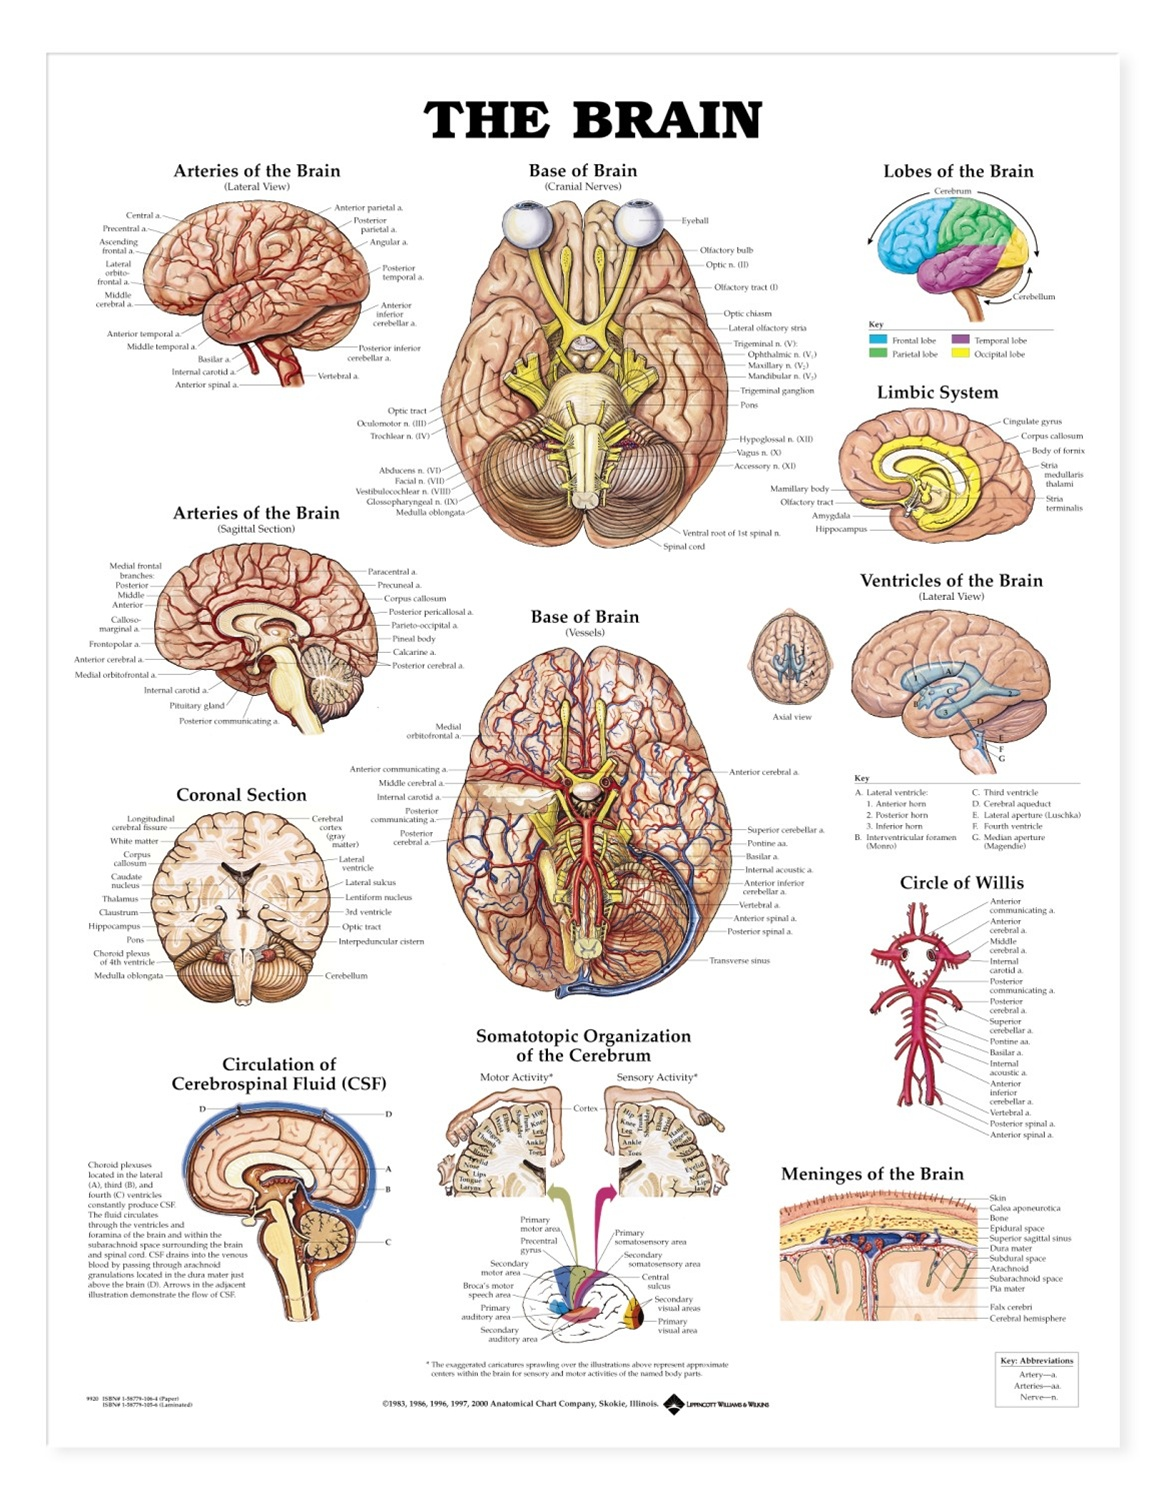 The Brain Anatomical Chart - Anatomy Models and Anatomical ... - photo#5